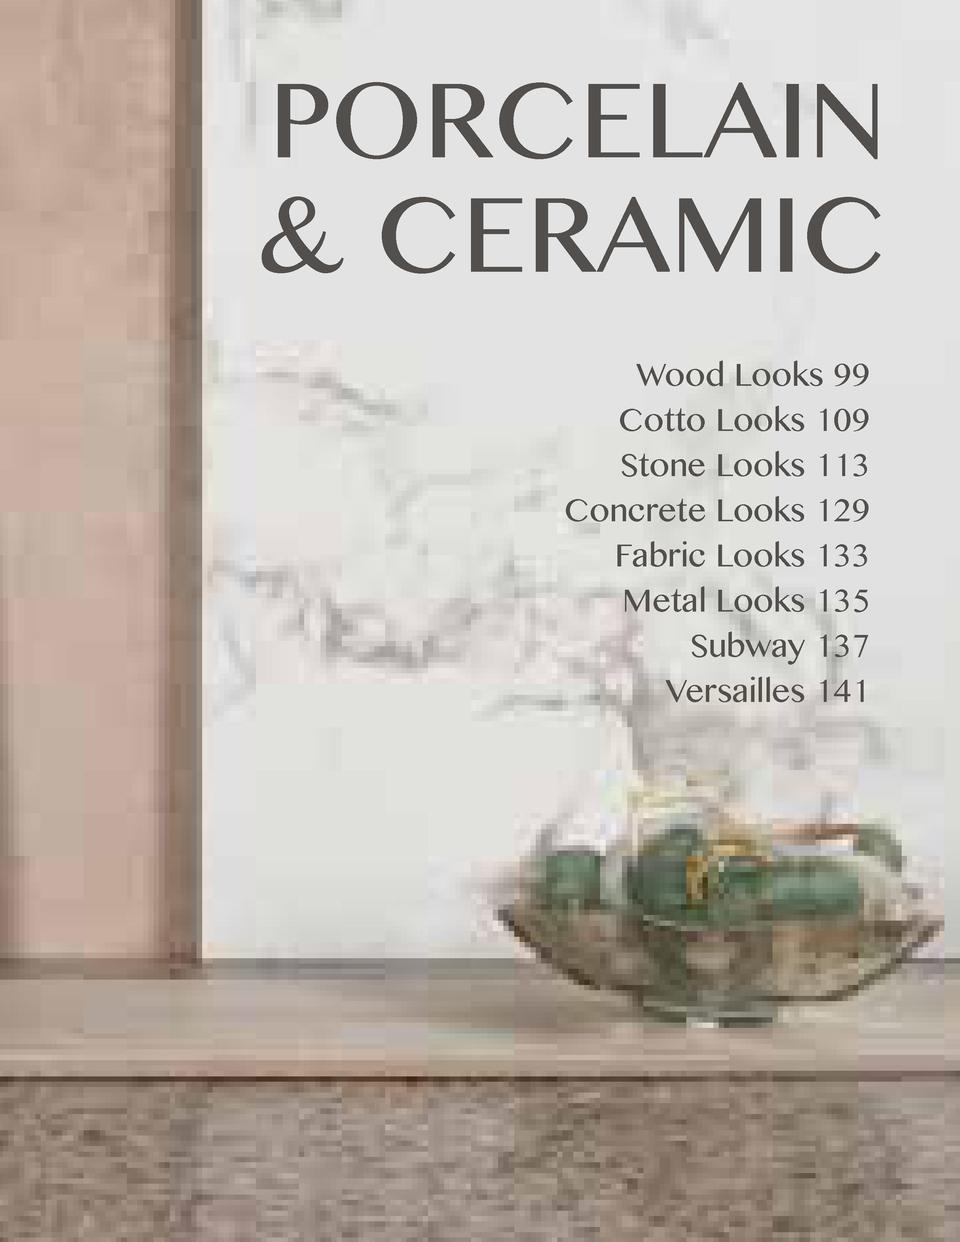 PORCELAIN   CERAMIC Wood Looks 99 Cotto Looks 109 Stone Looks 113 Concrete Looks 129 Fabric Looks 133 Metal Looks 135 Subw...